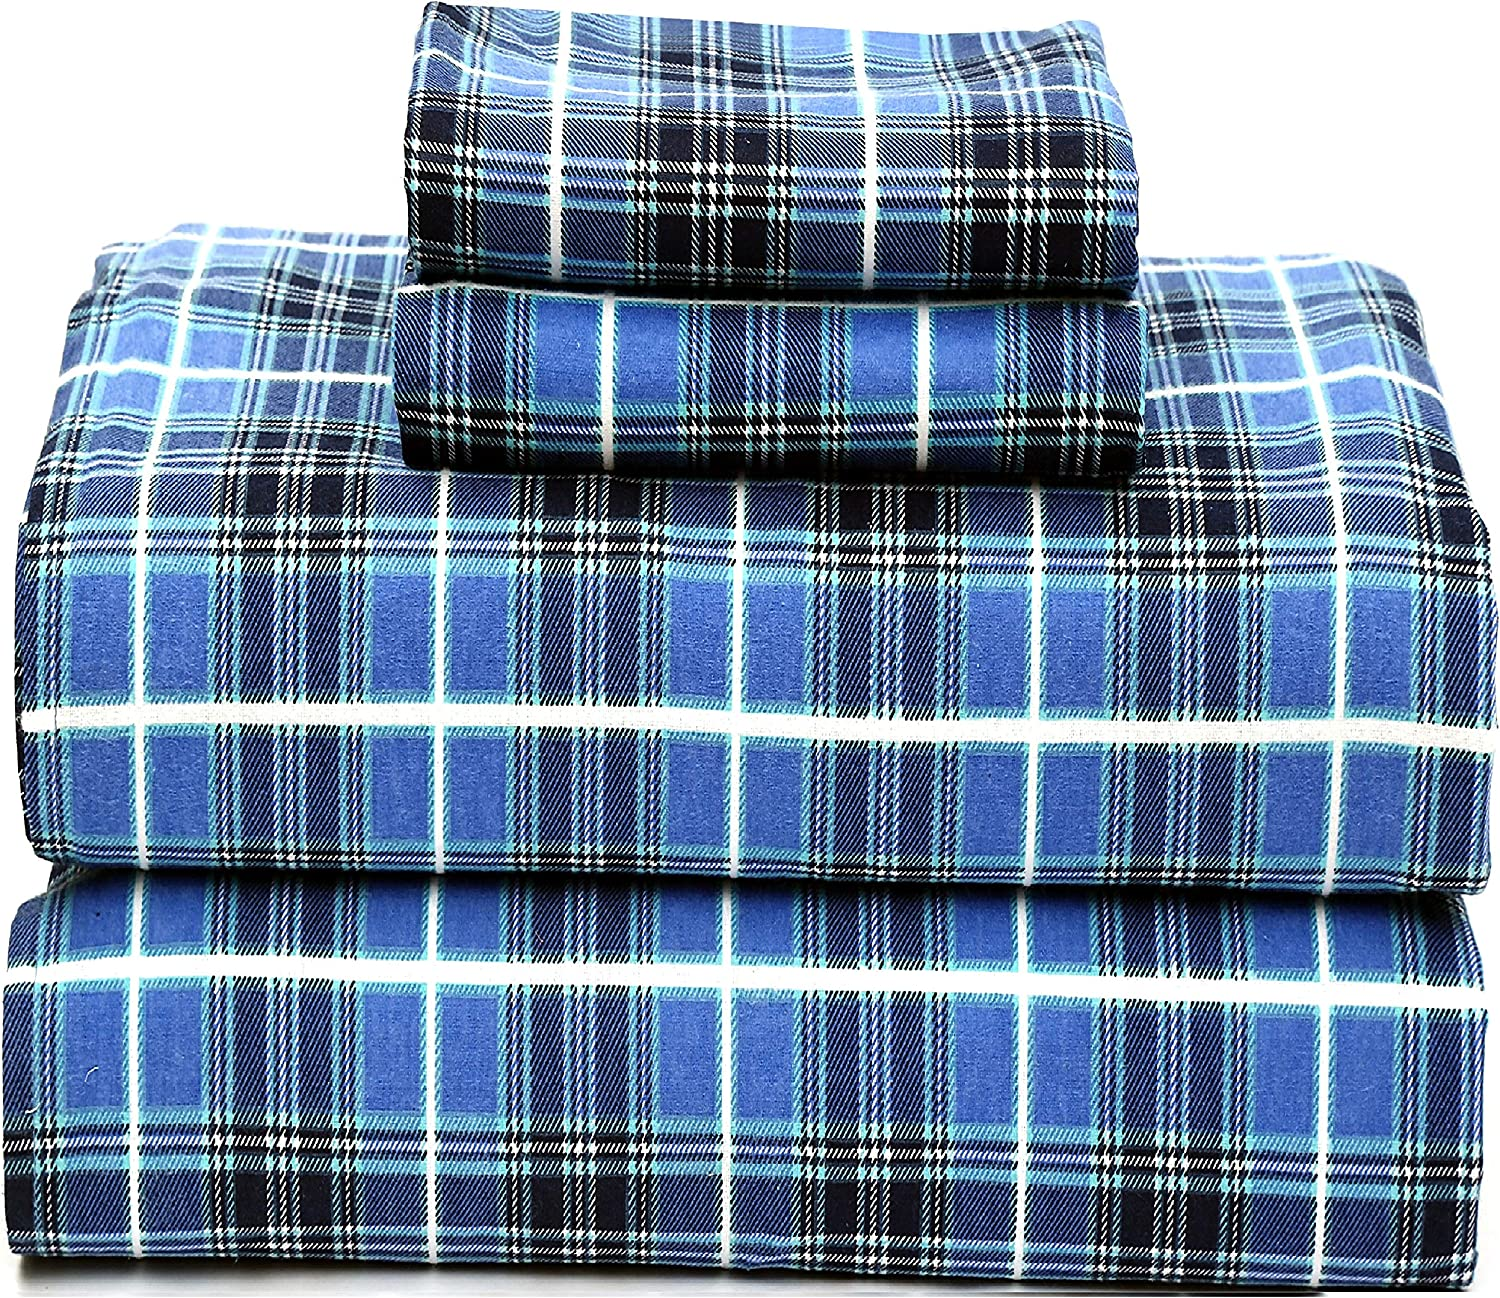 Amazon Com Ruvanti 100 Cotton 4 Pcs Flannel Sheets King Deep Pocket Warm Super Soft Breathable King Size Flannel Sheets Buffalo Plaid King Size Bed Sheet Set Include Flat Sheet Fitted Sheet 2 Pillow Cases